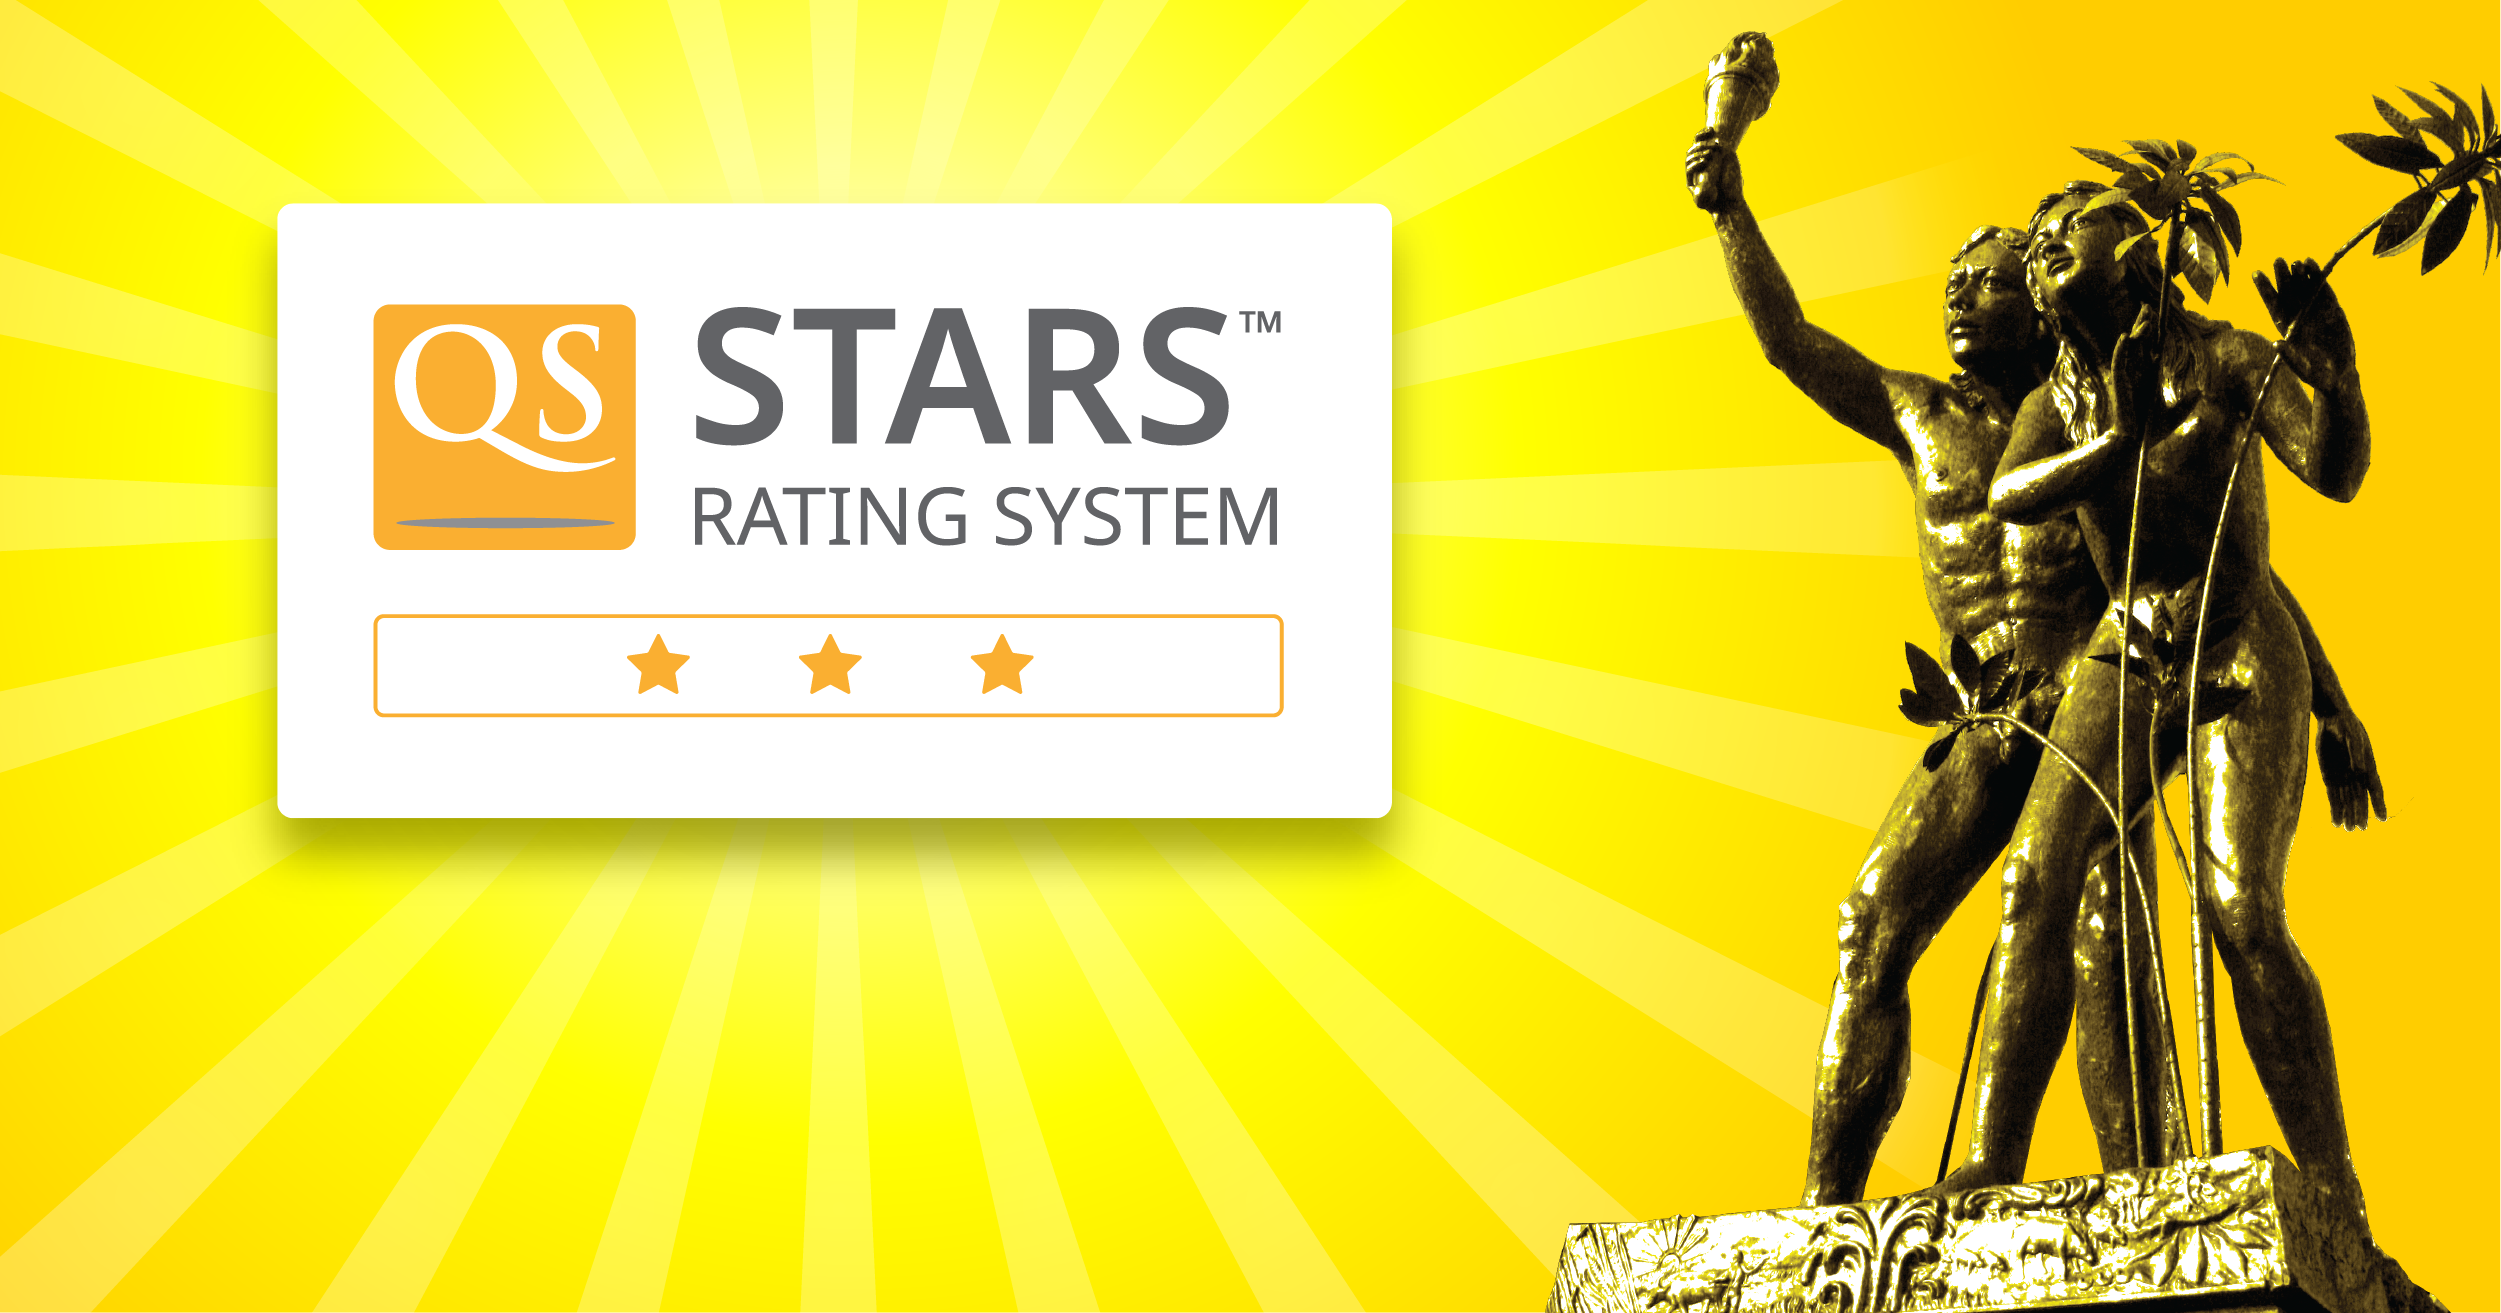 QS awards VSU with 3-Star rating